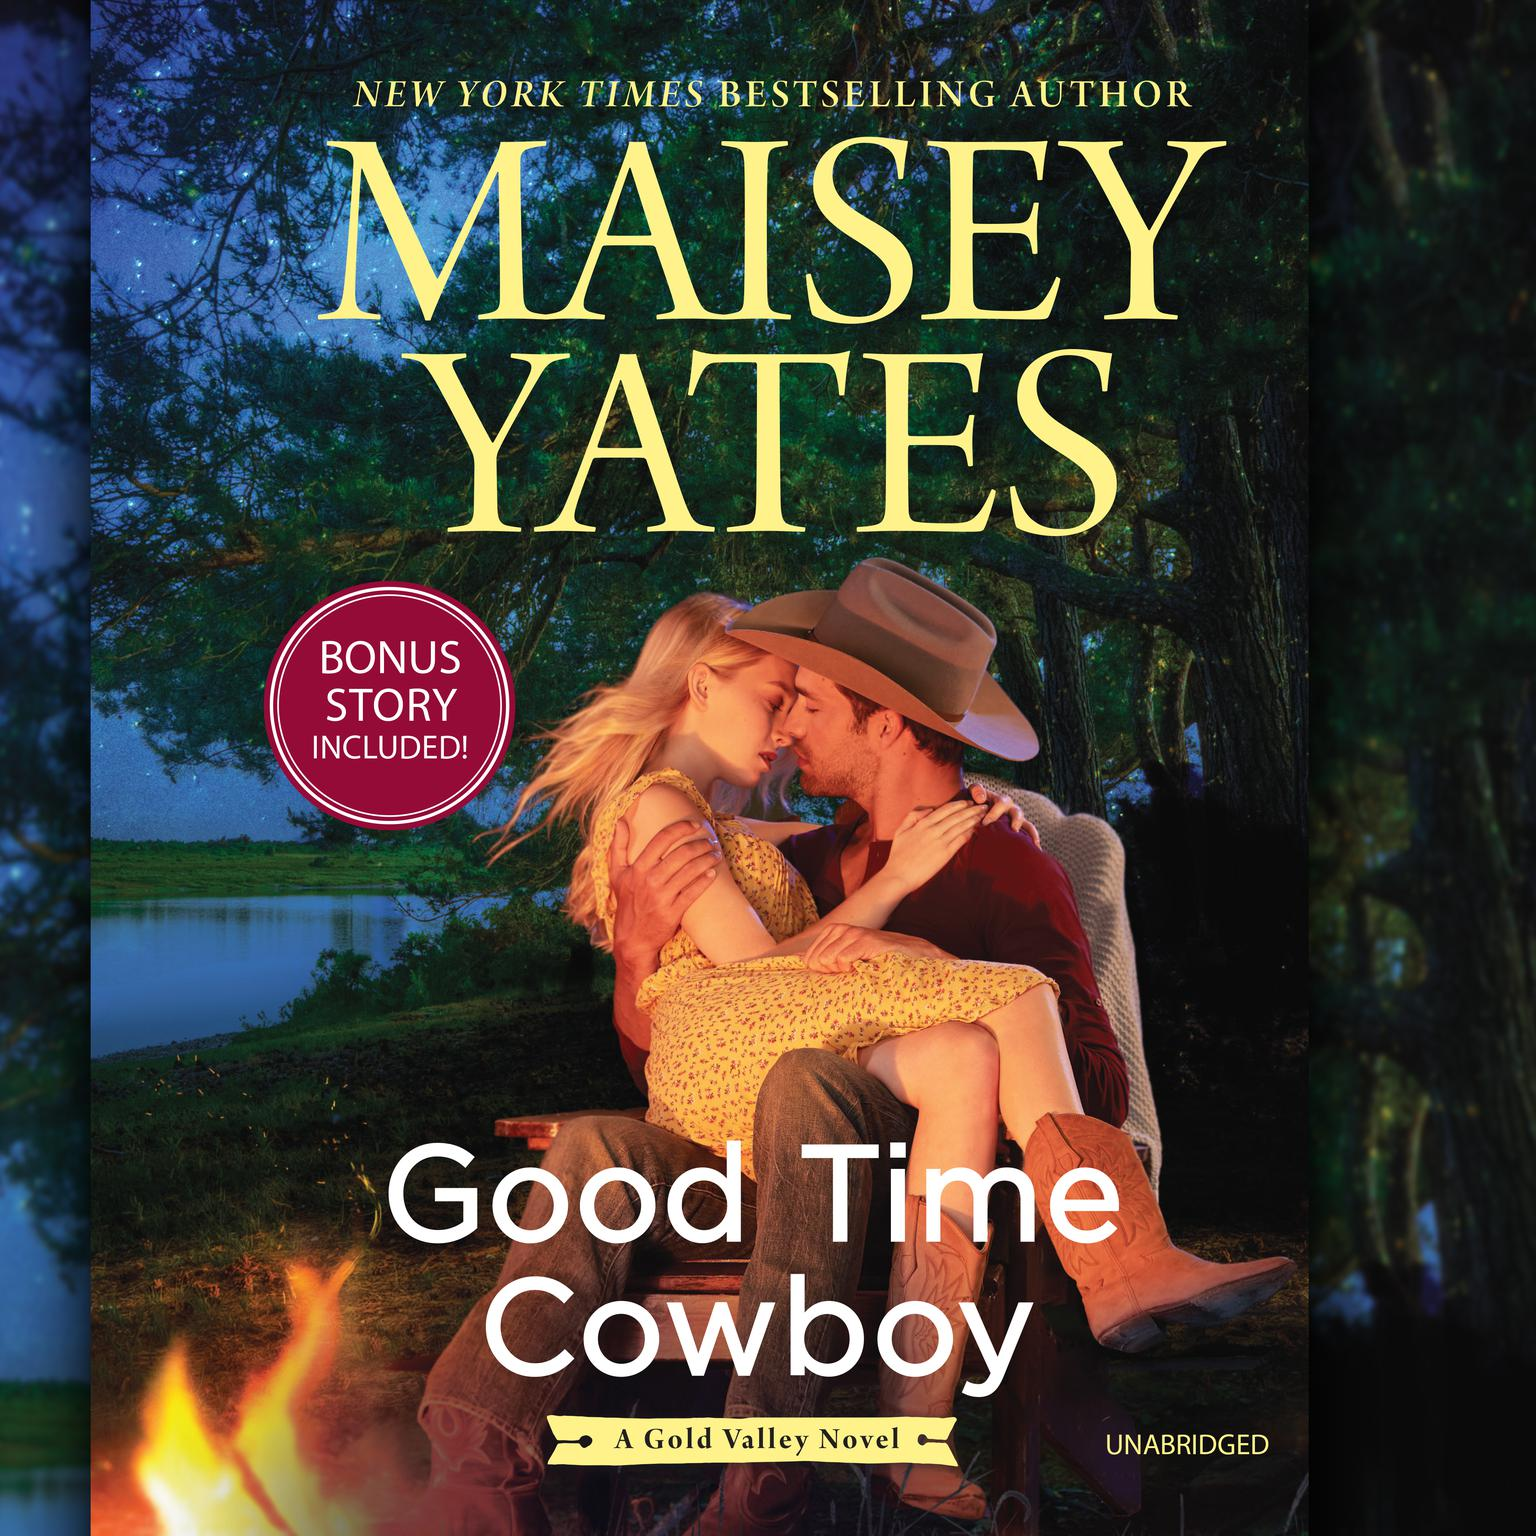 Good Time Cowboy: plus Hard Riding Cowboy A Gold Valley Novel Audiobook, by Maisey Yates